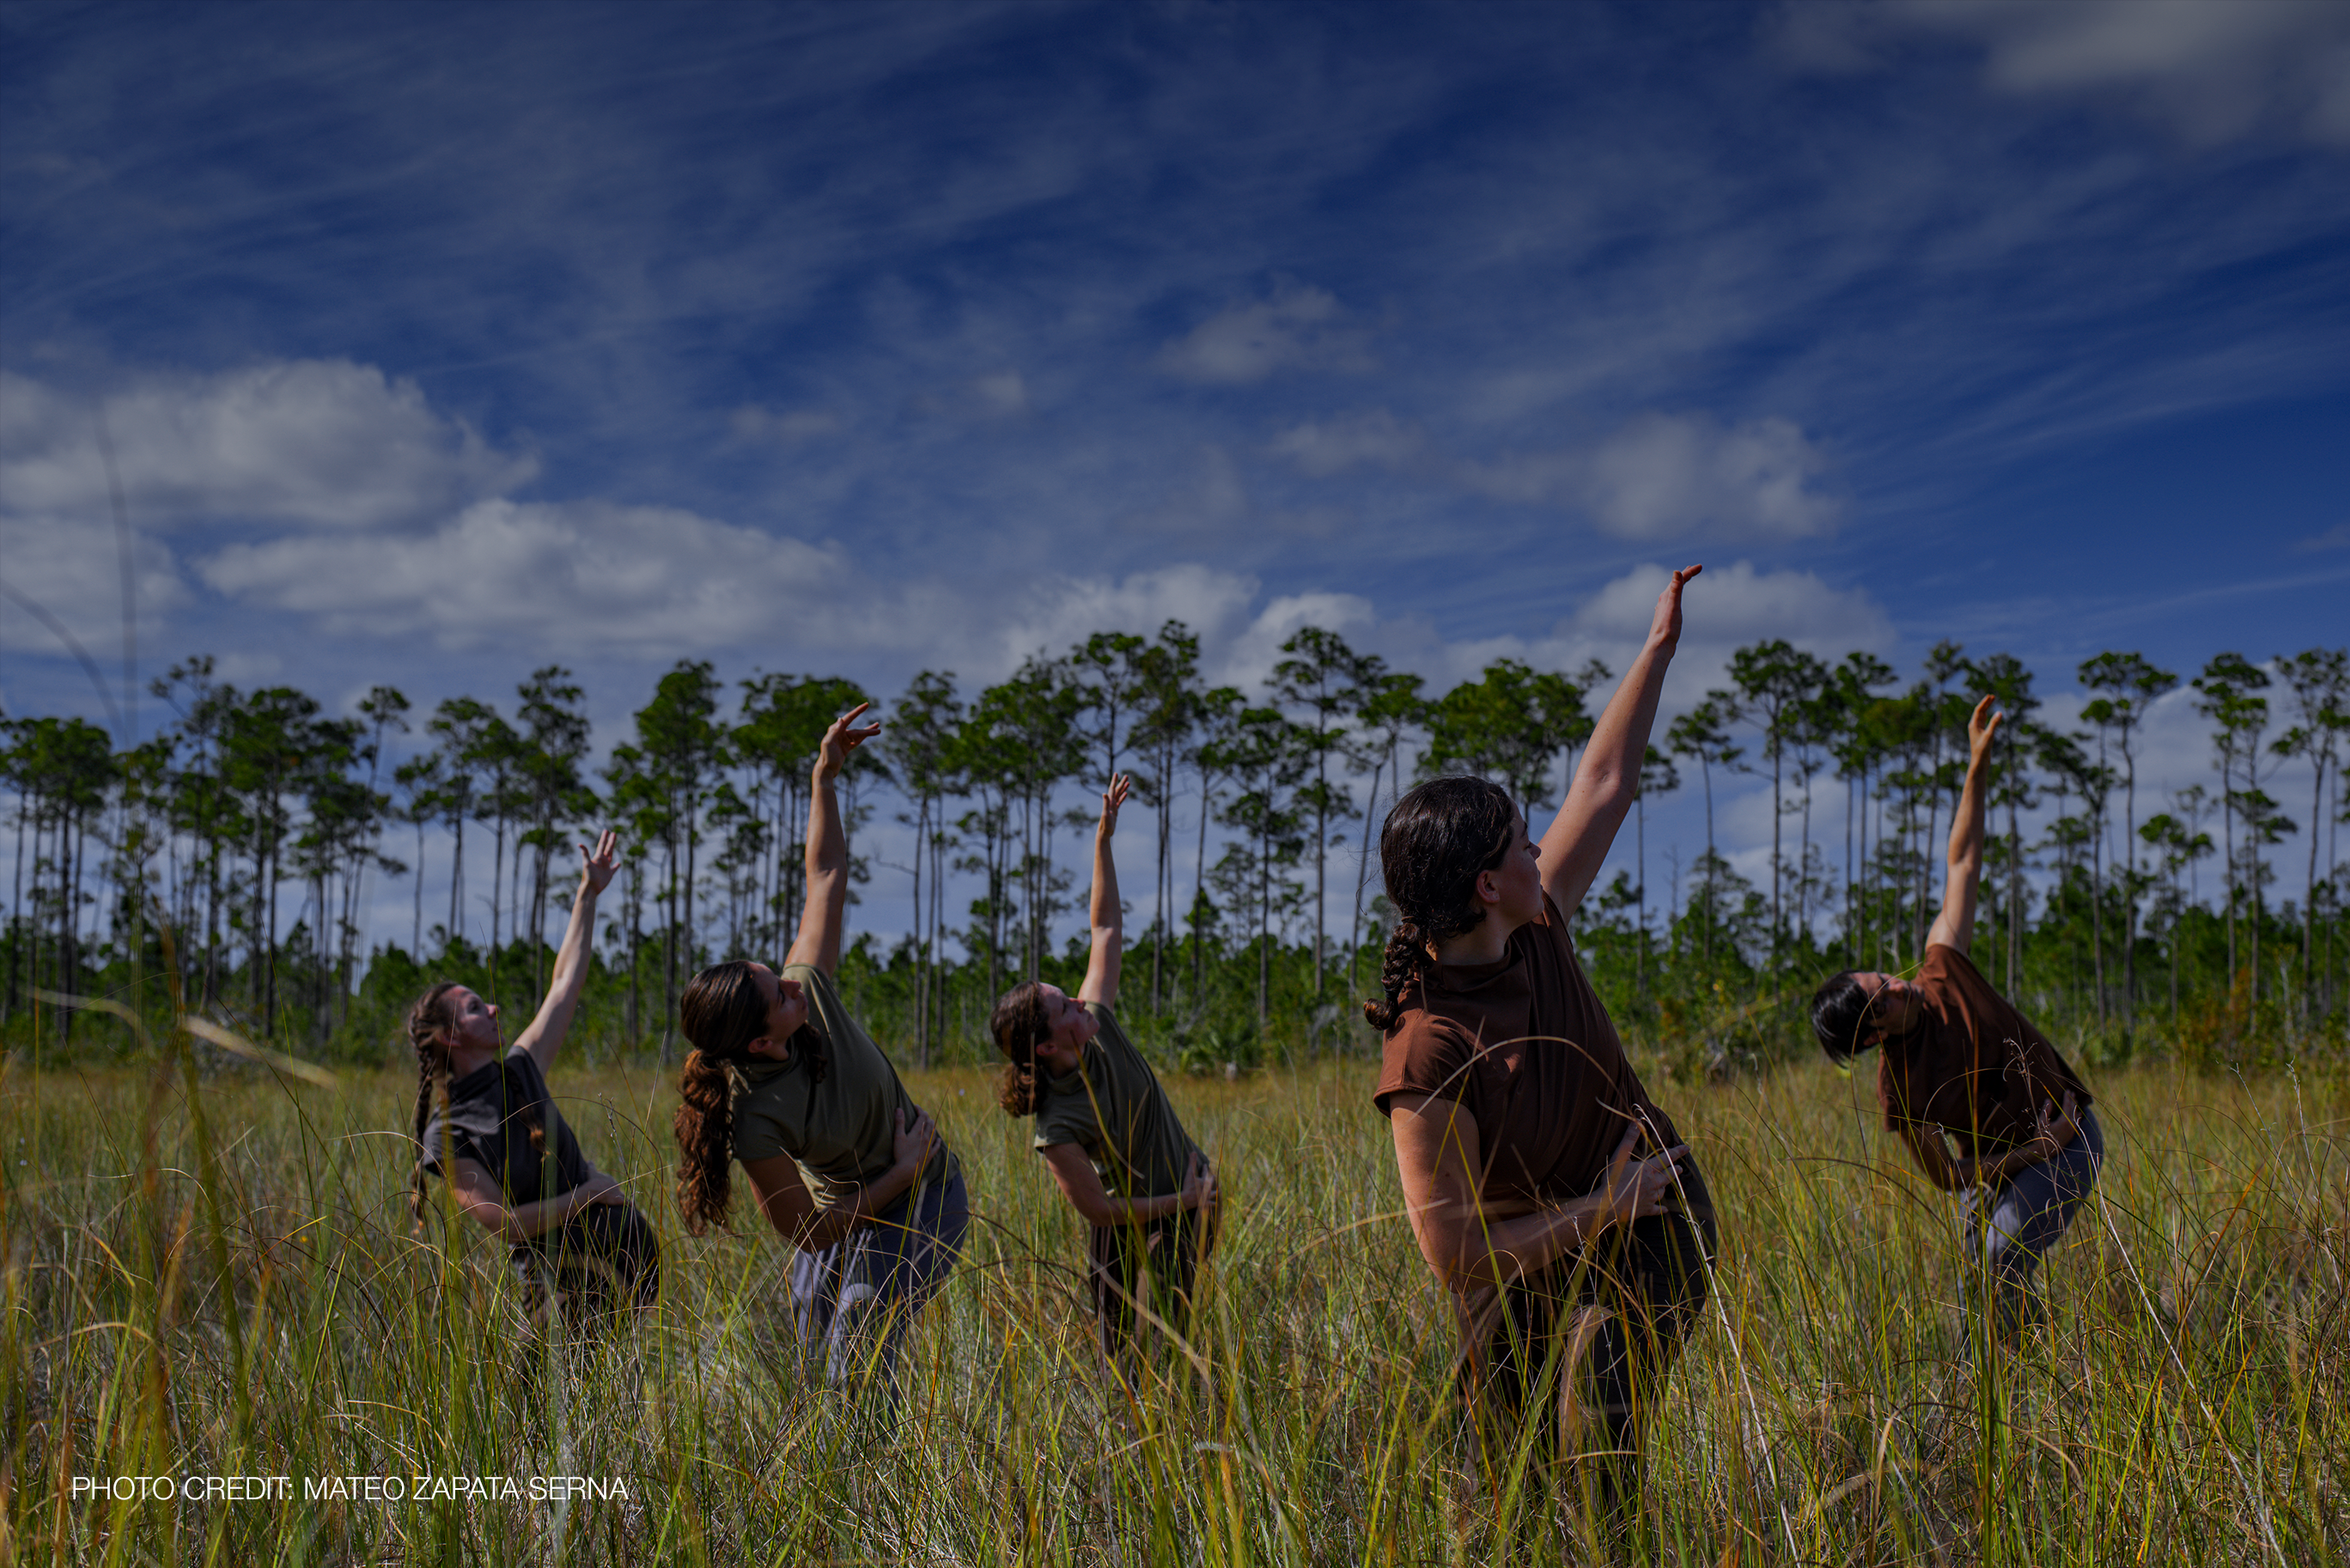 Dancers in the Everglades, Photo Credit: Mateo Zapata Serna